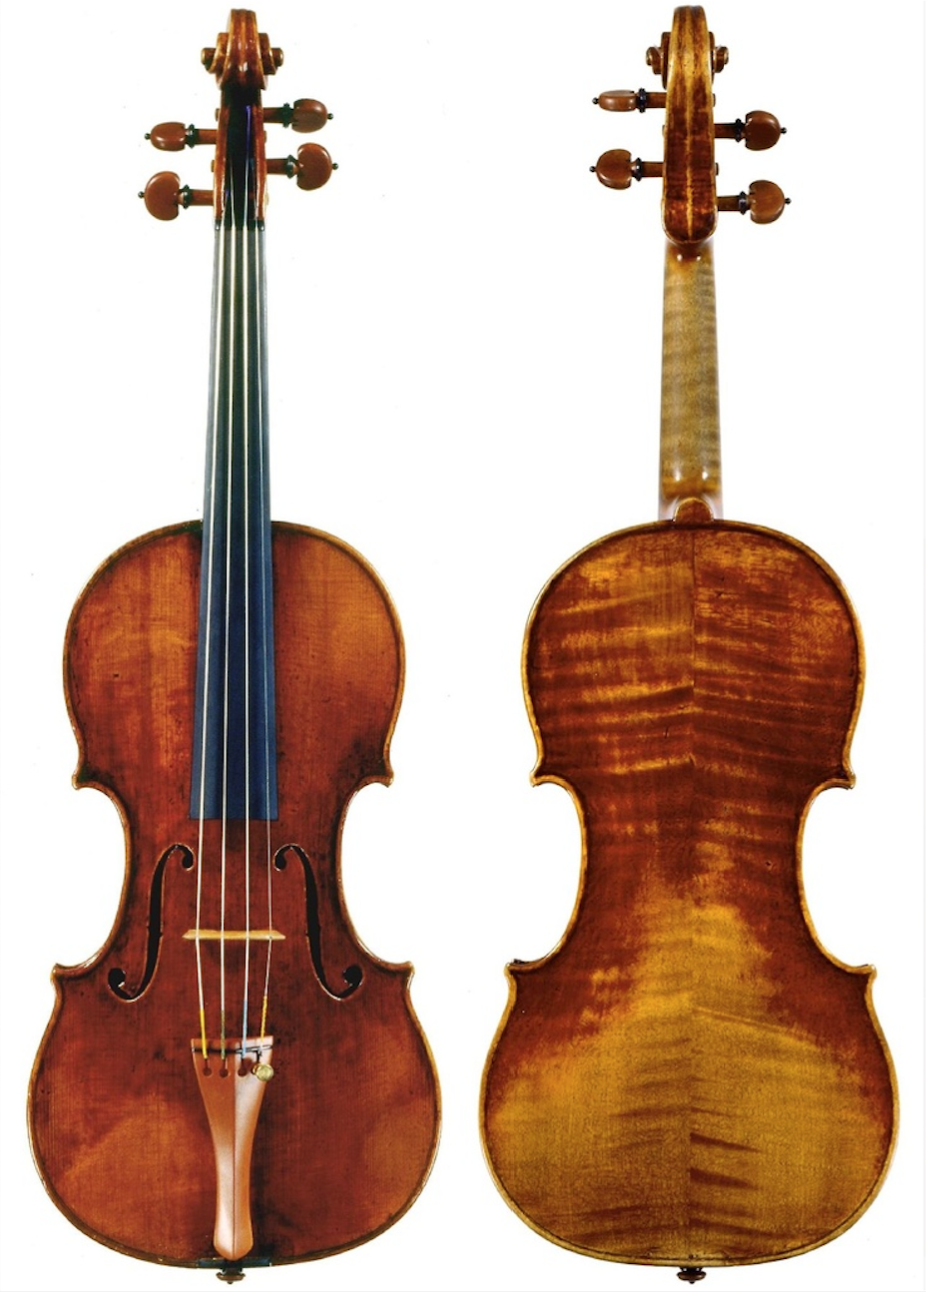 Violin by Guarneri, Giuseppe 'del Gesu'  (Cremona, 1732)